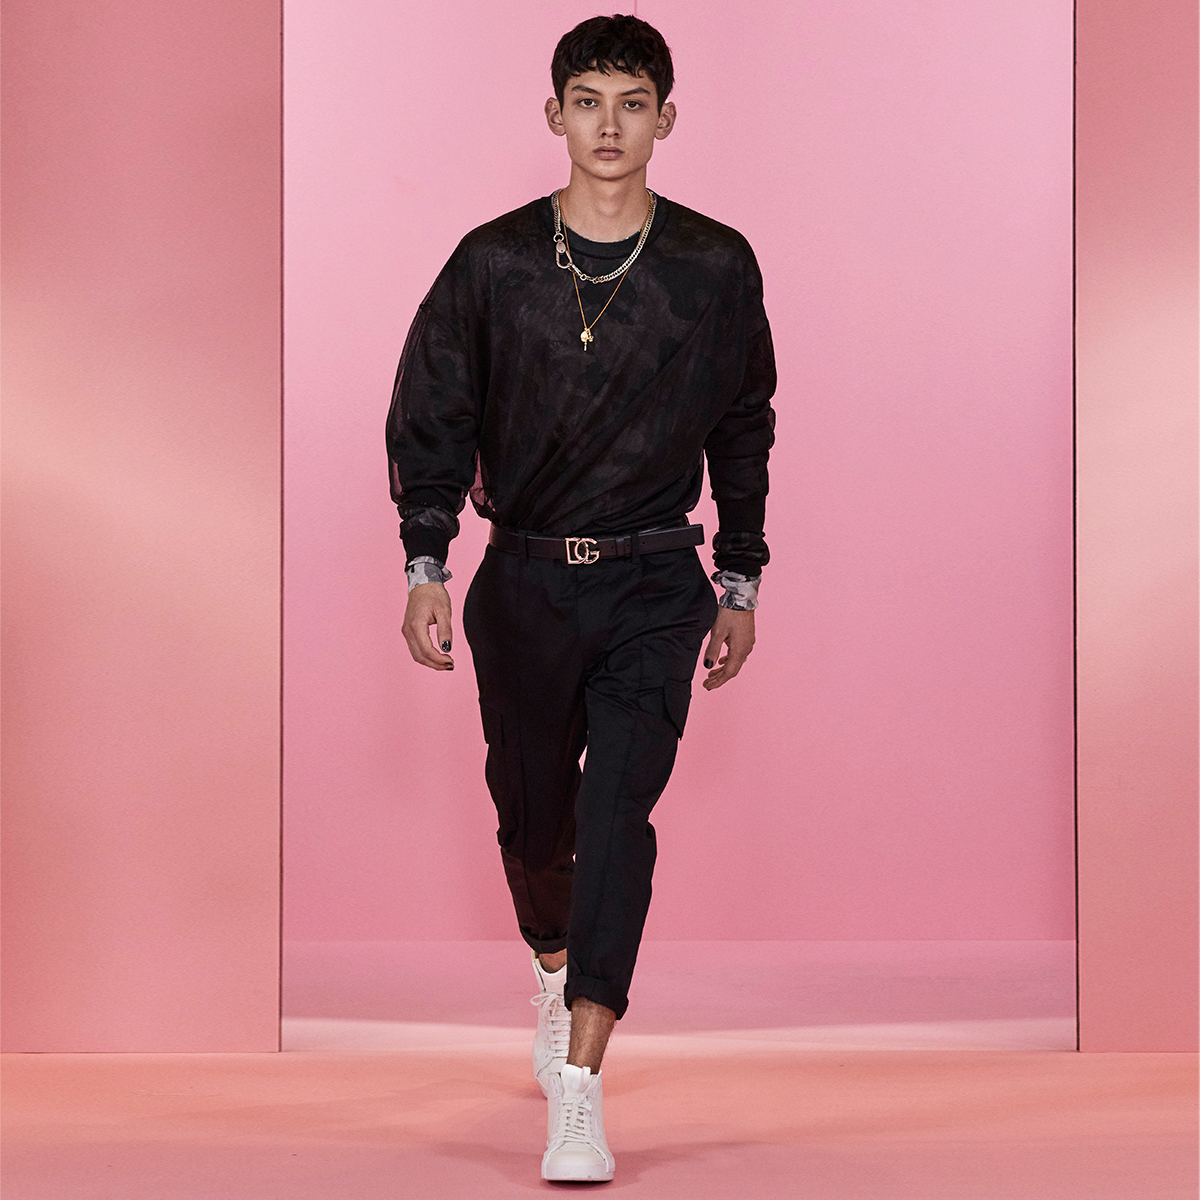 The #DGDigitalShowMan1 look is made up of transparent black and camouflage shirts, black trousers, a #DolceGabbana logo belt and white high-top sneakers.  Shop the DNA look at the link:  #DolceGabbana